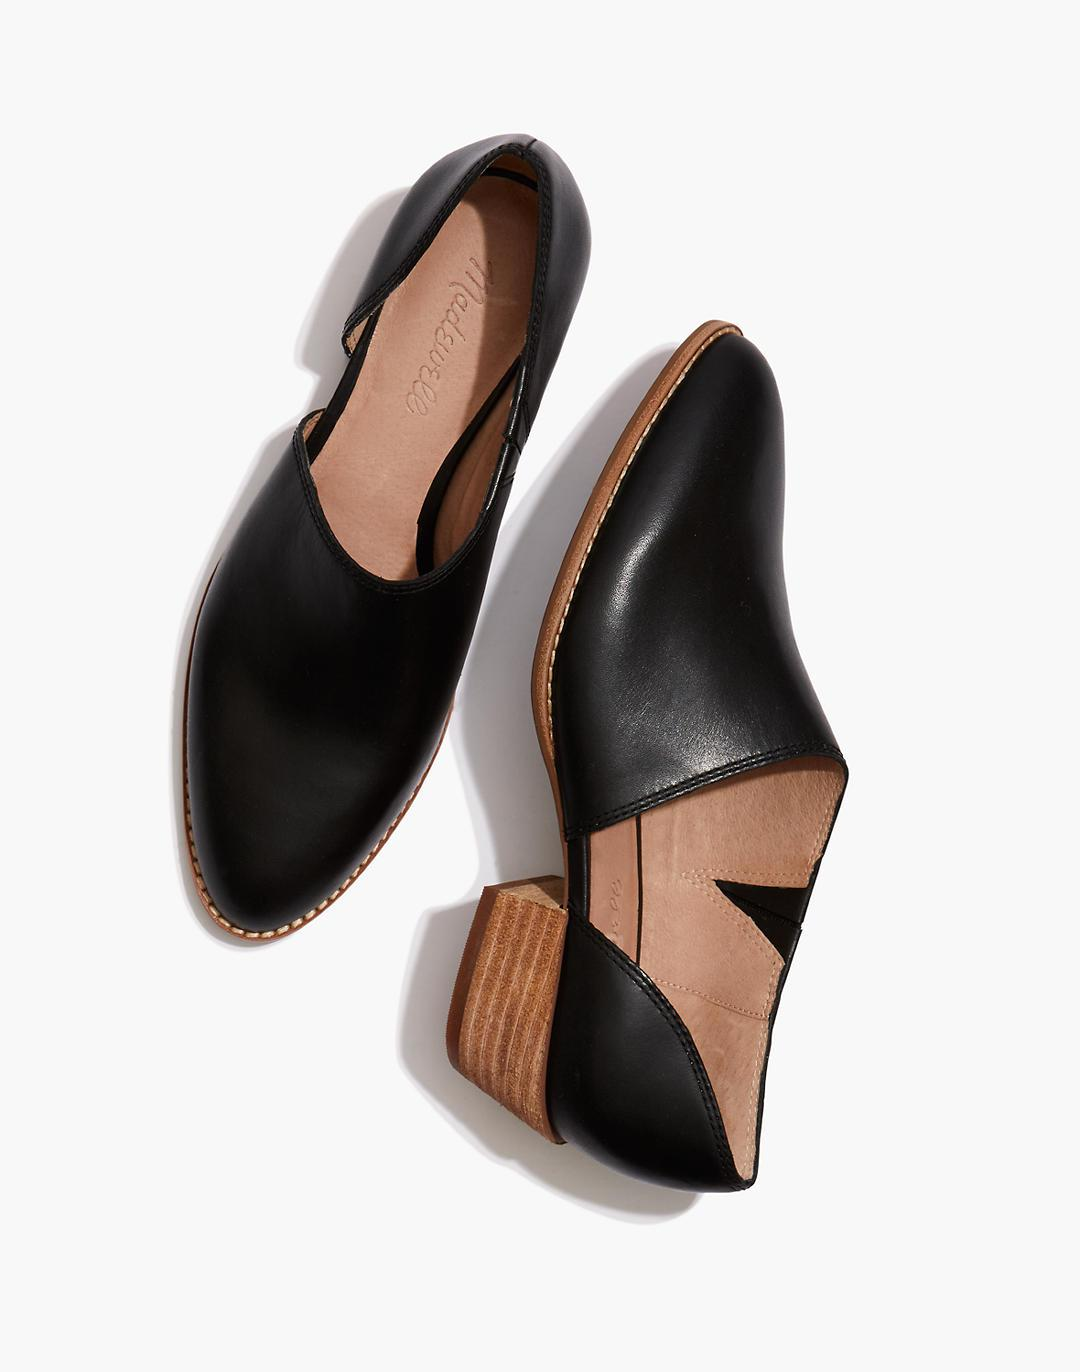 The Lucie Shoe in Leather